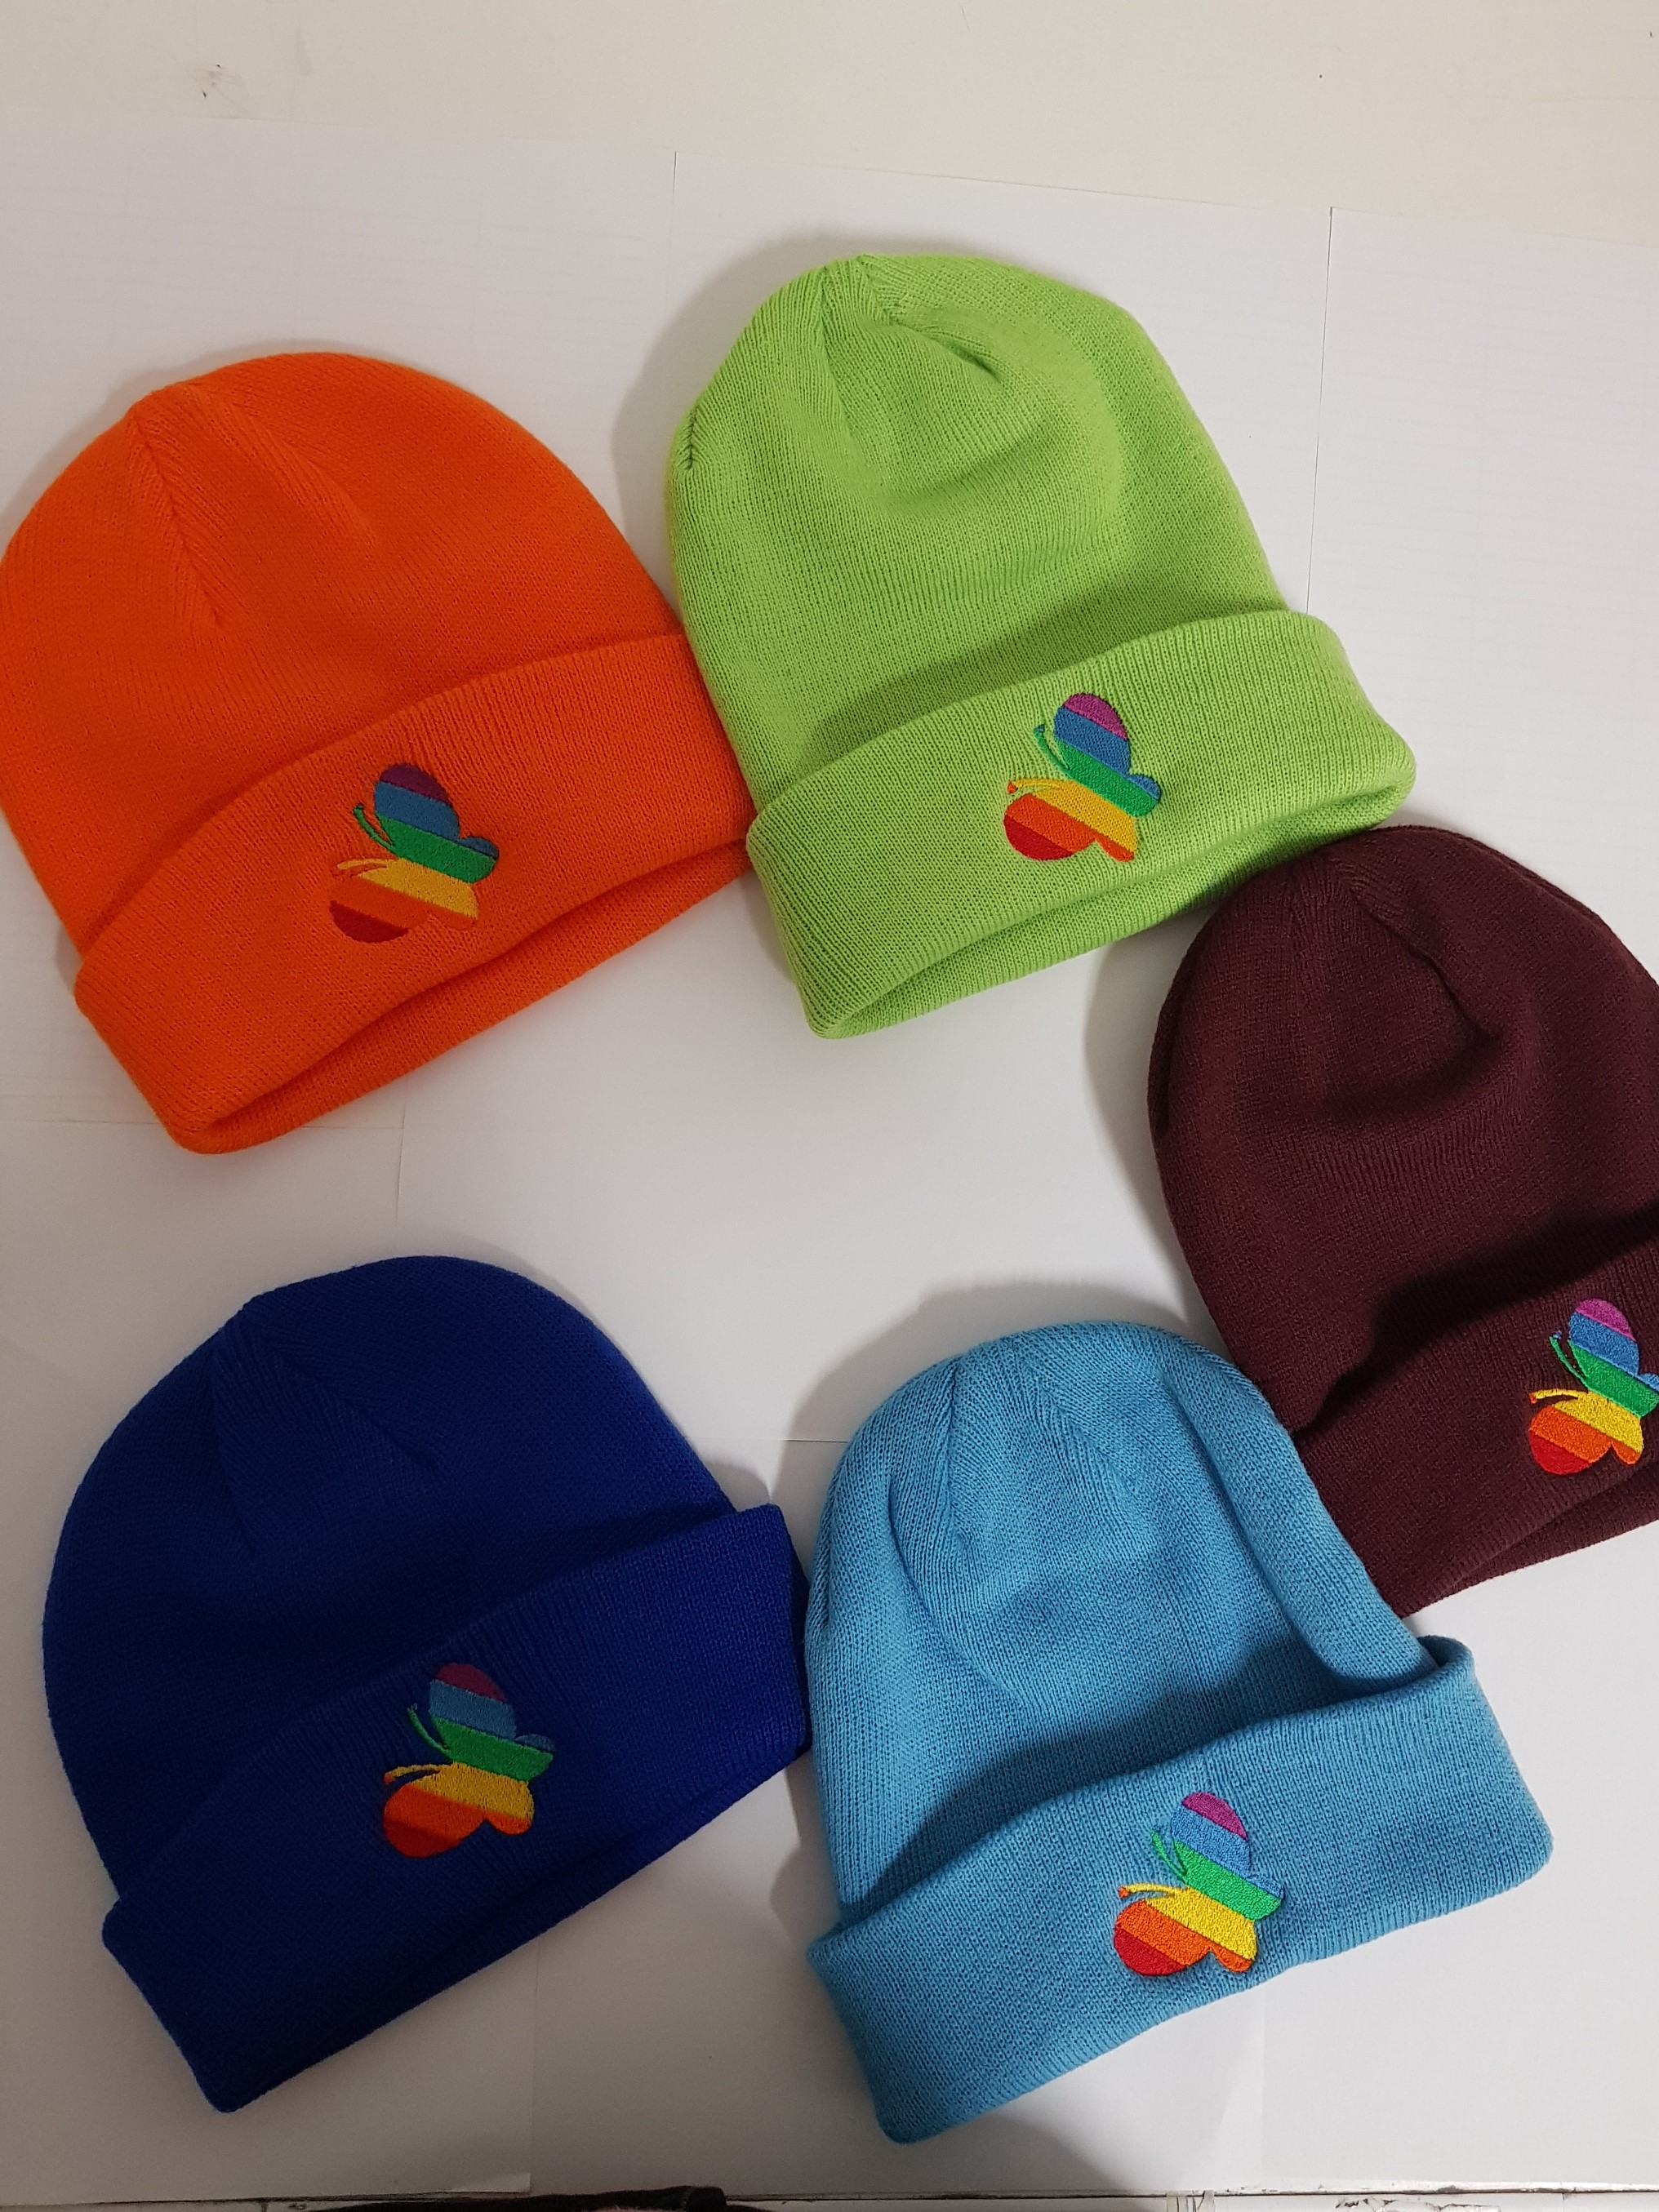 Wicklow Hospice Hats in the full colour range